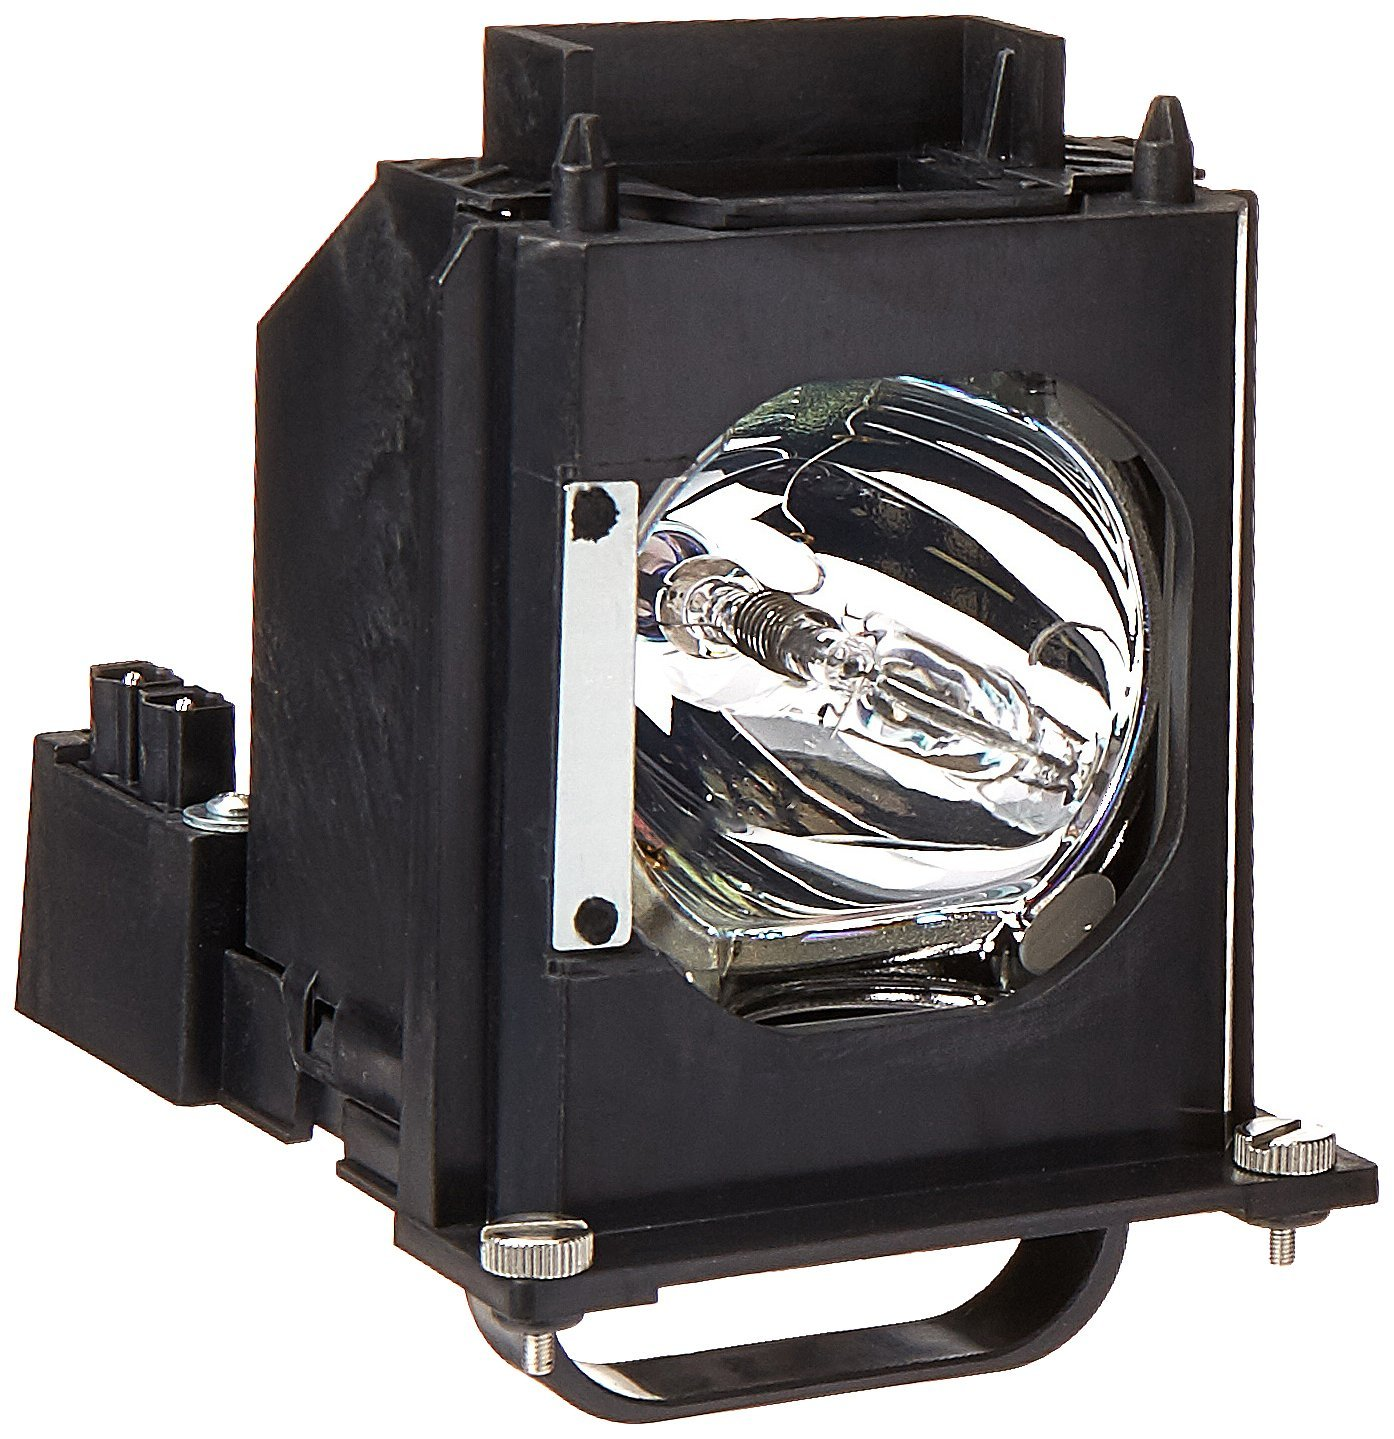 Amazon.com: RPTV Lamp for Mitsubishi 915B403001: Electronics